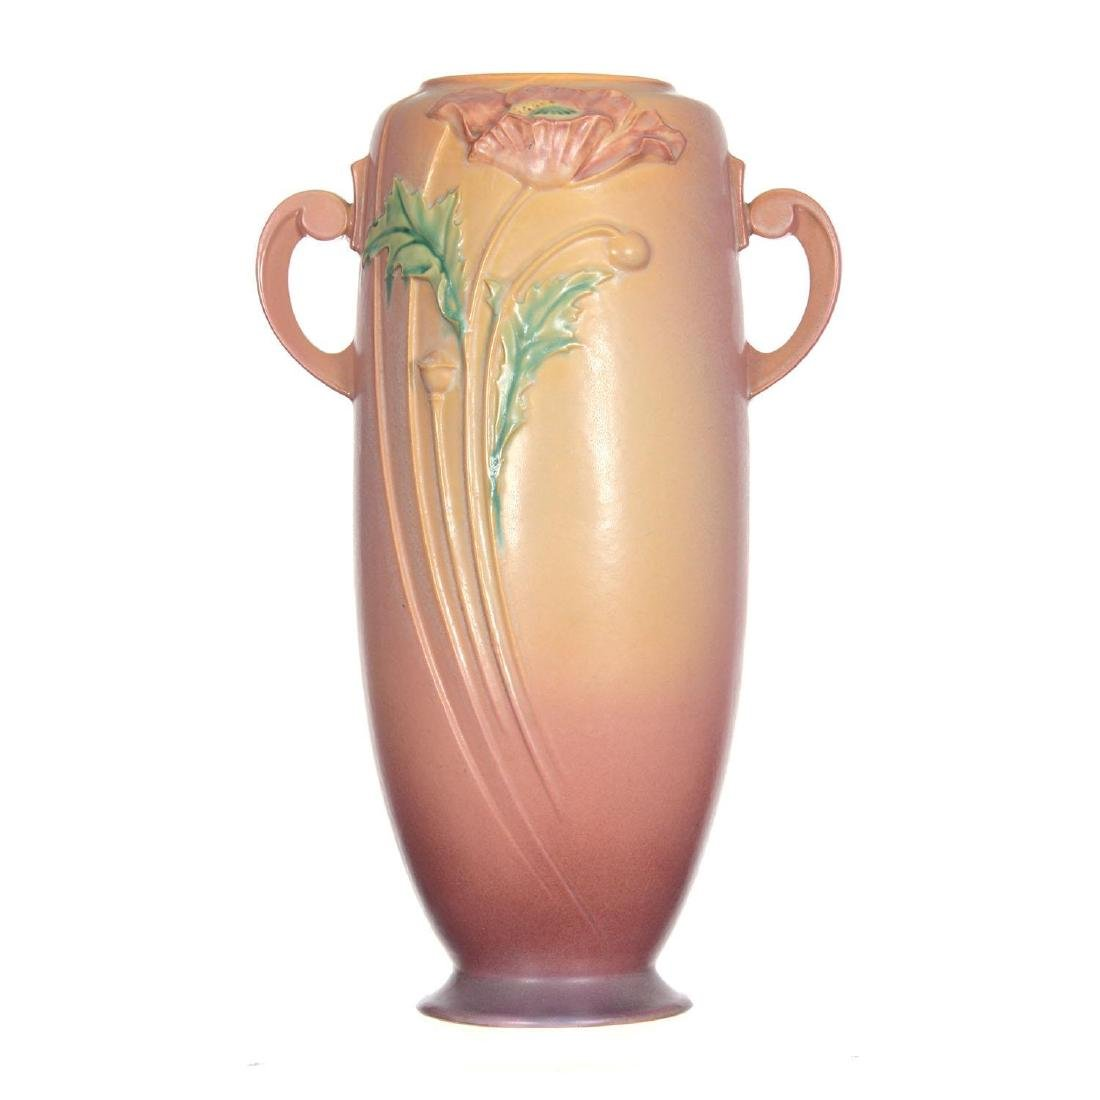 "Roseville Art Pottery #879-18"" Vase - 2"